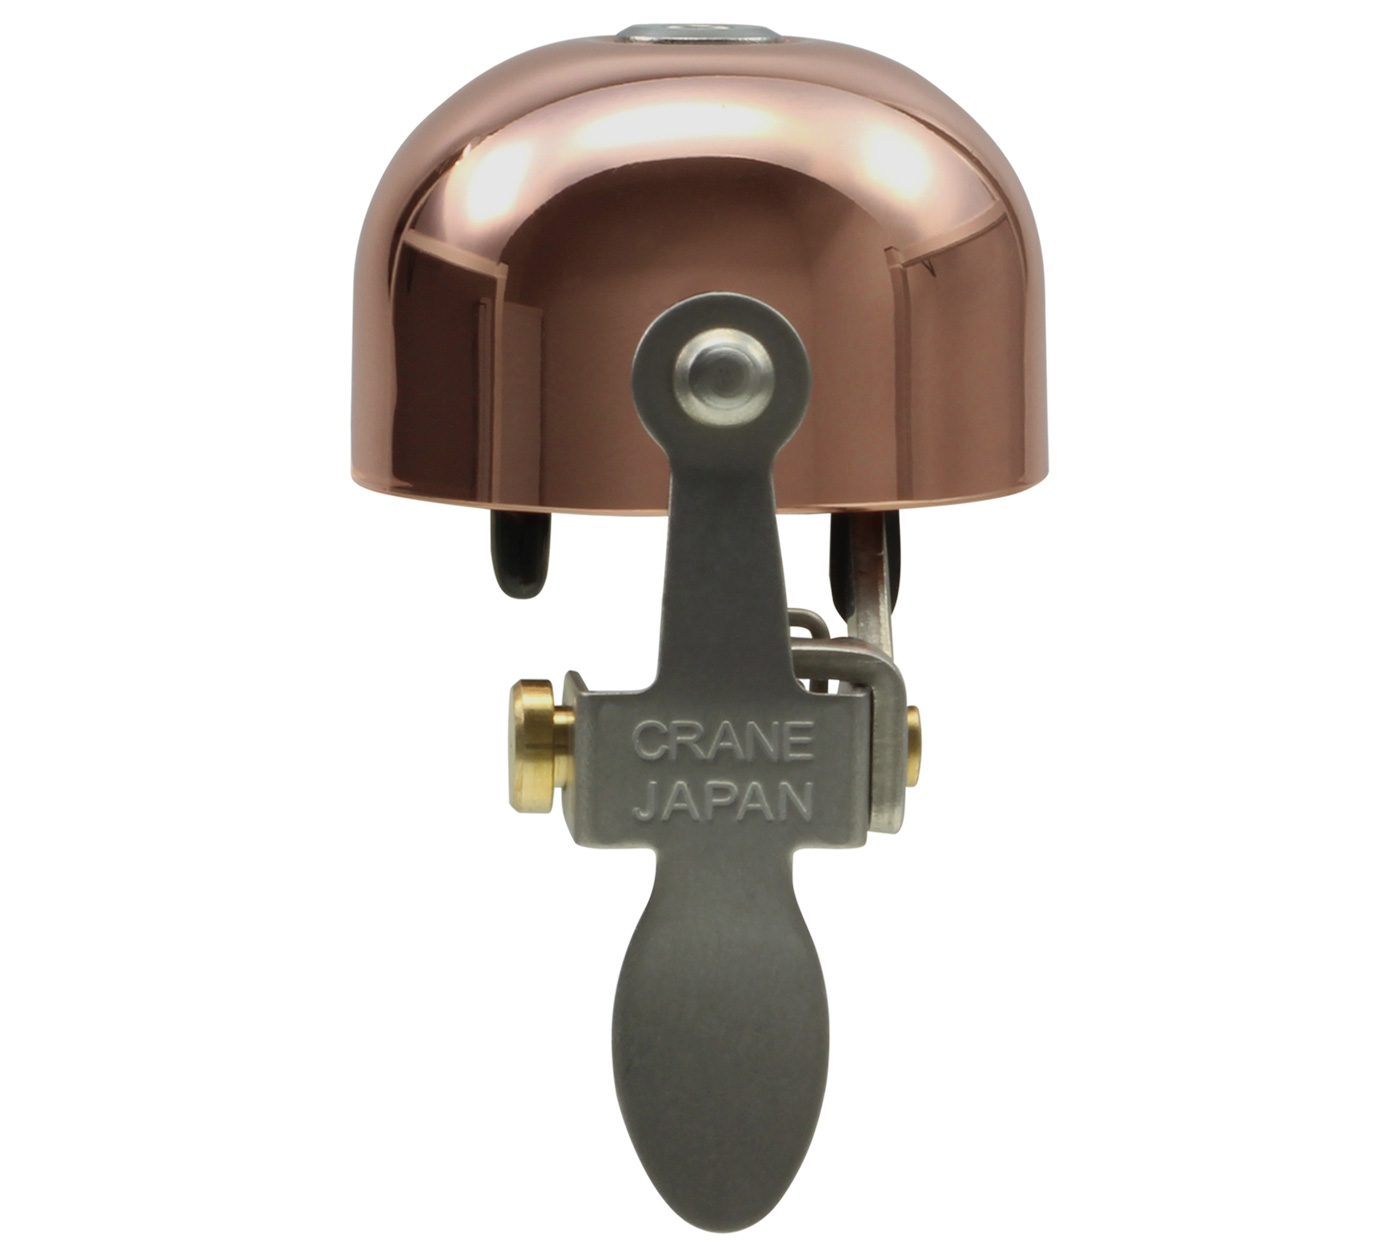 Copper Crane Bell E-Ne Brass Bicycle Bell with Clamp Band Mount